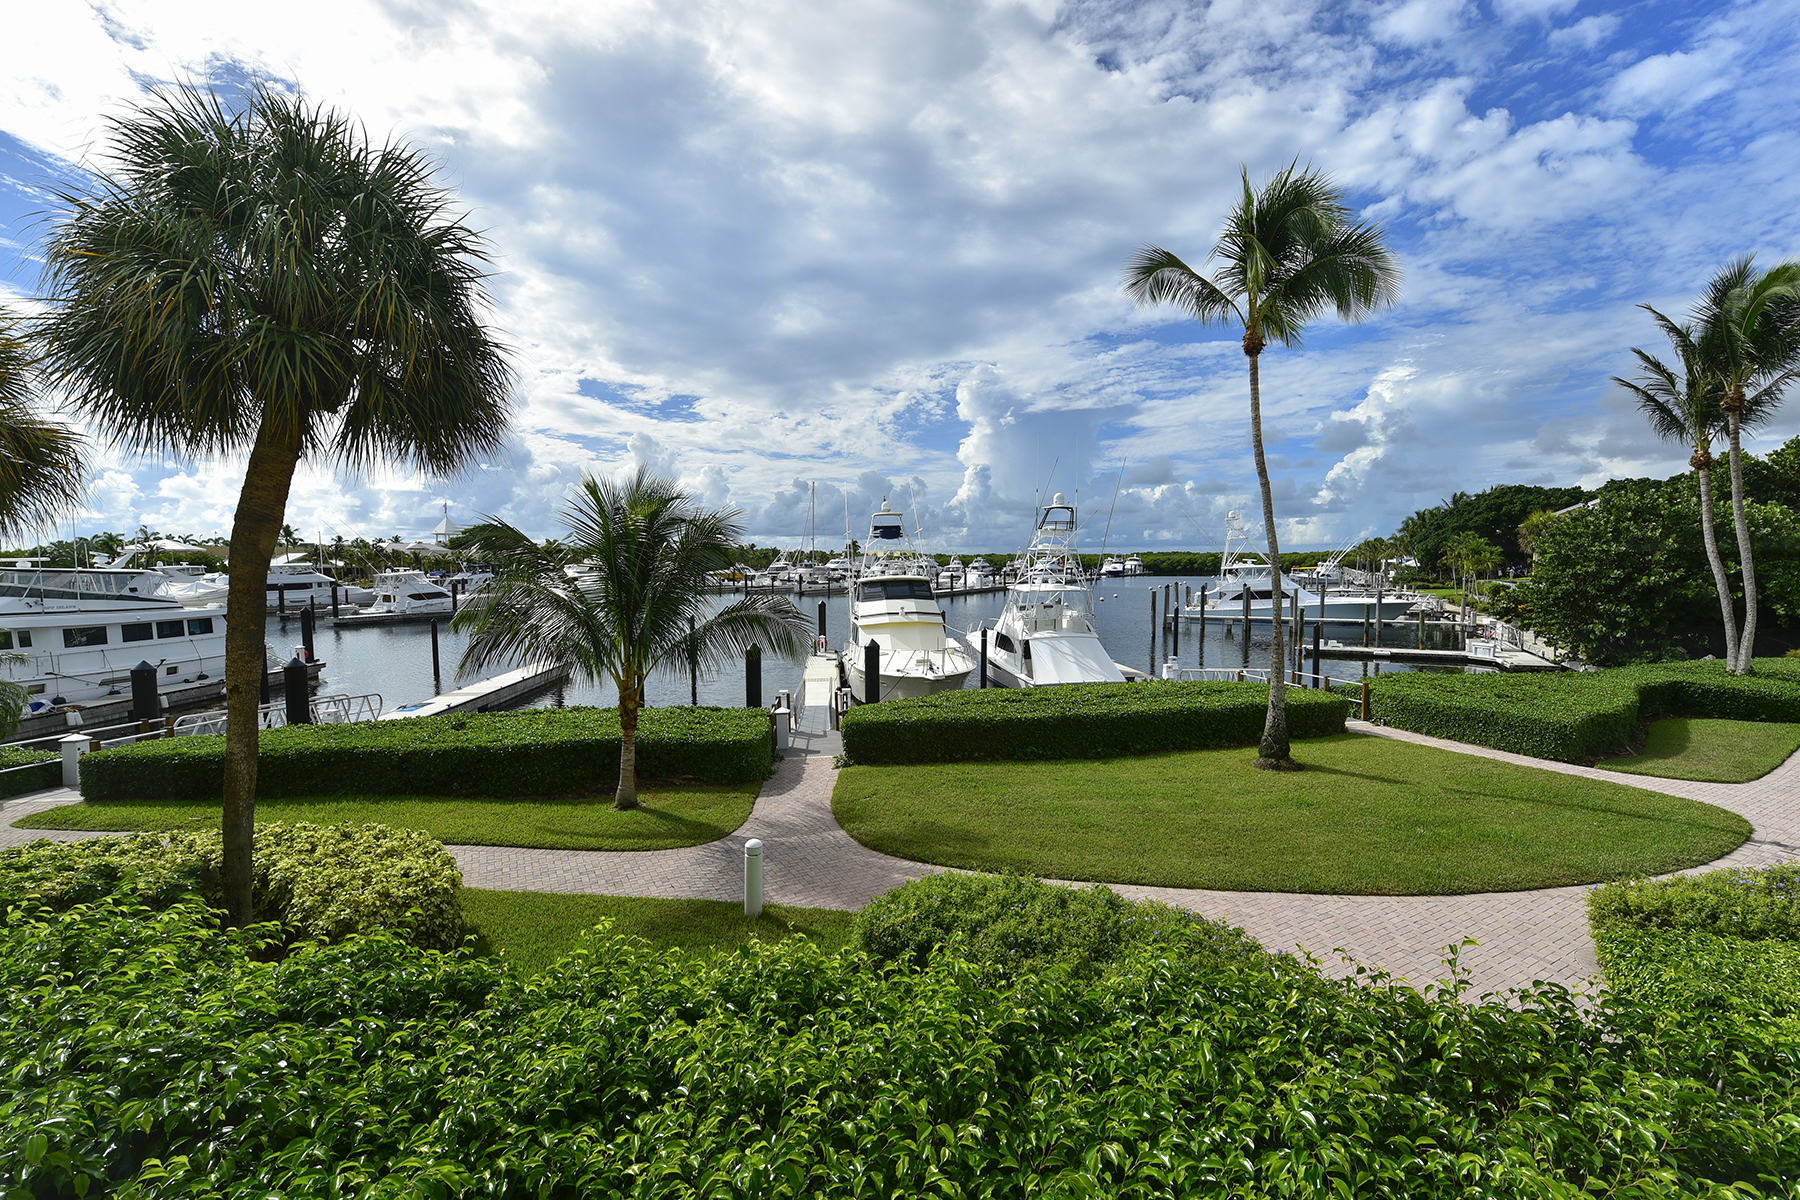 Condominium for Sale at Waterfront Condominium at Ocean Reef 18 Marina Drive, Unit A, Ocean Reef Community, Key Largo, Florida, 33037 United States